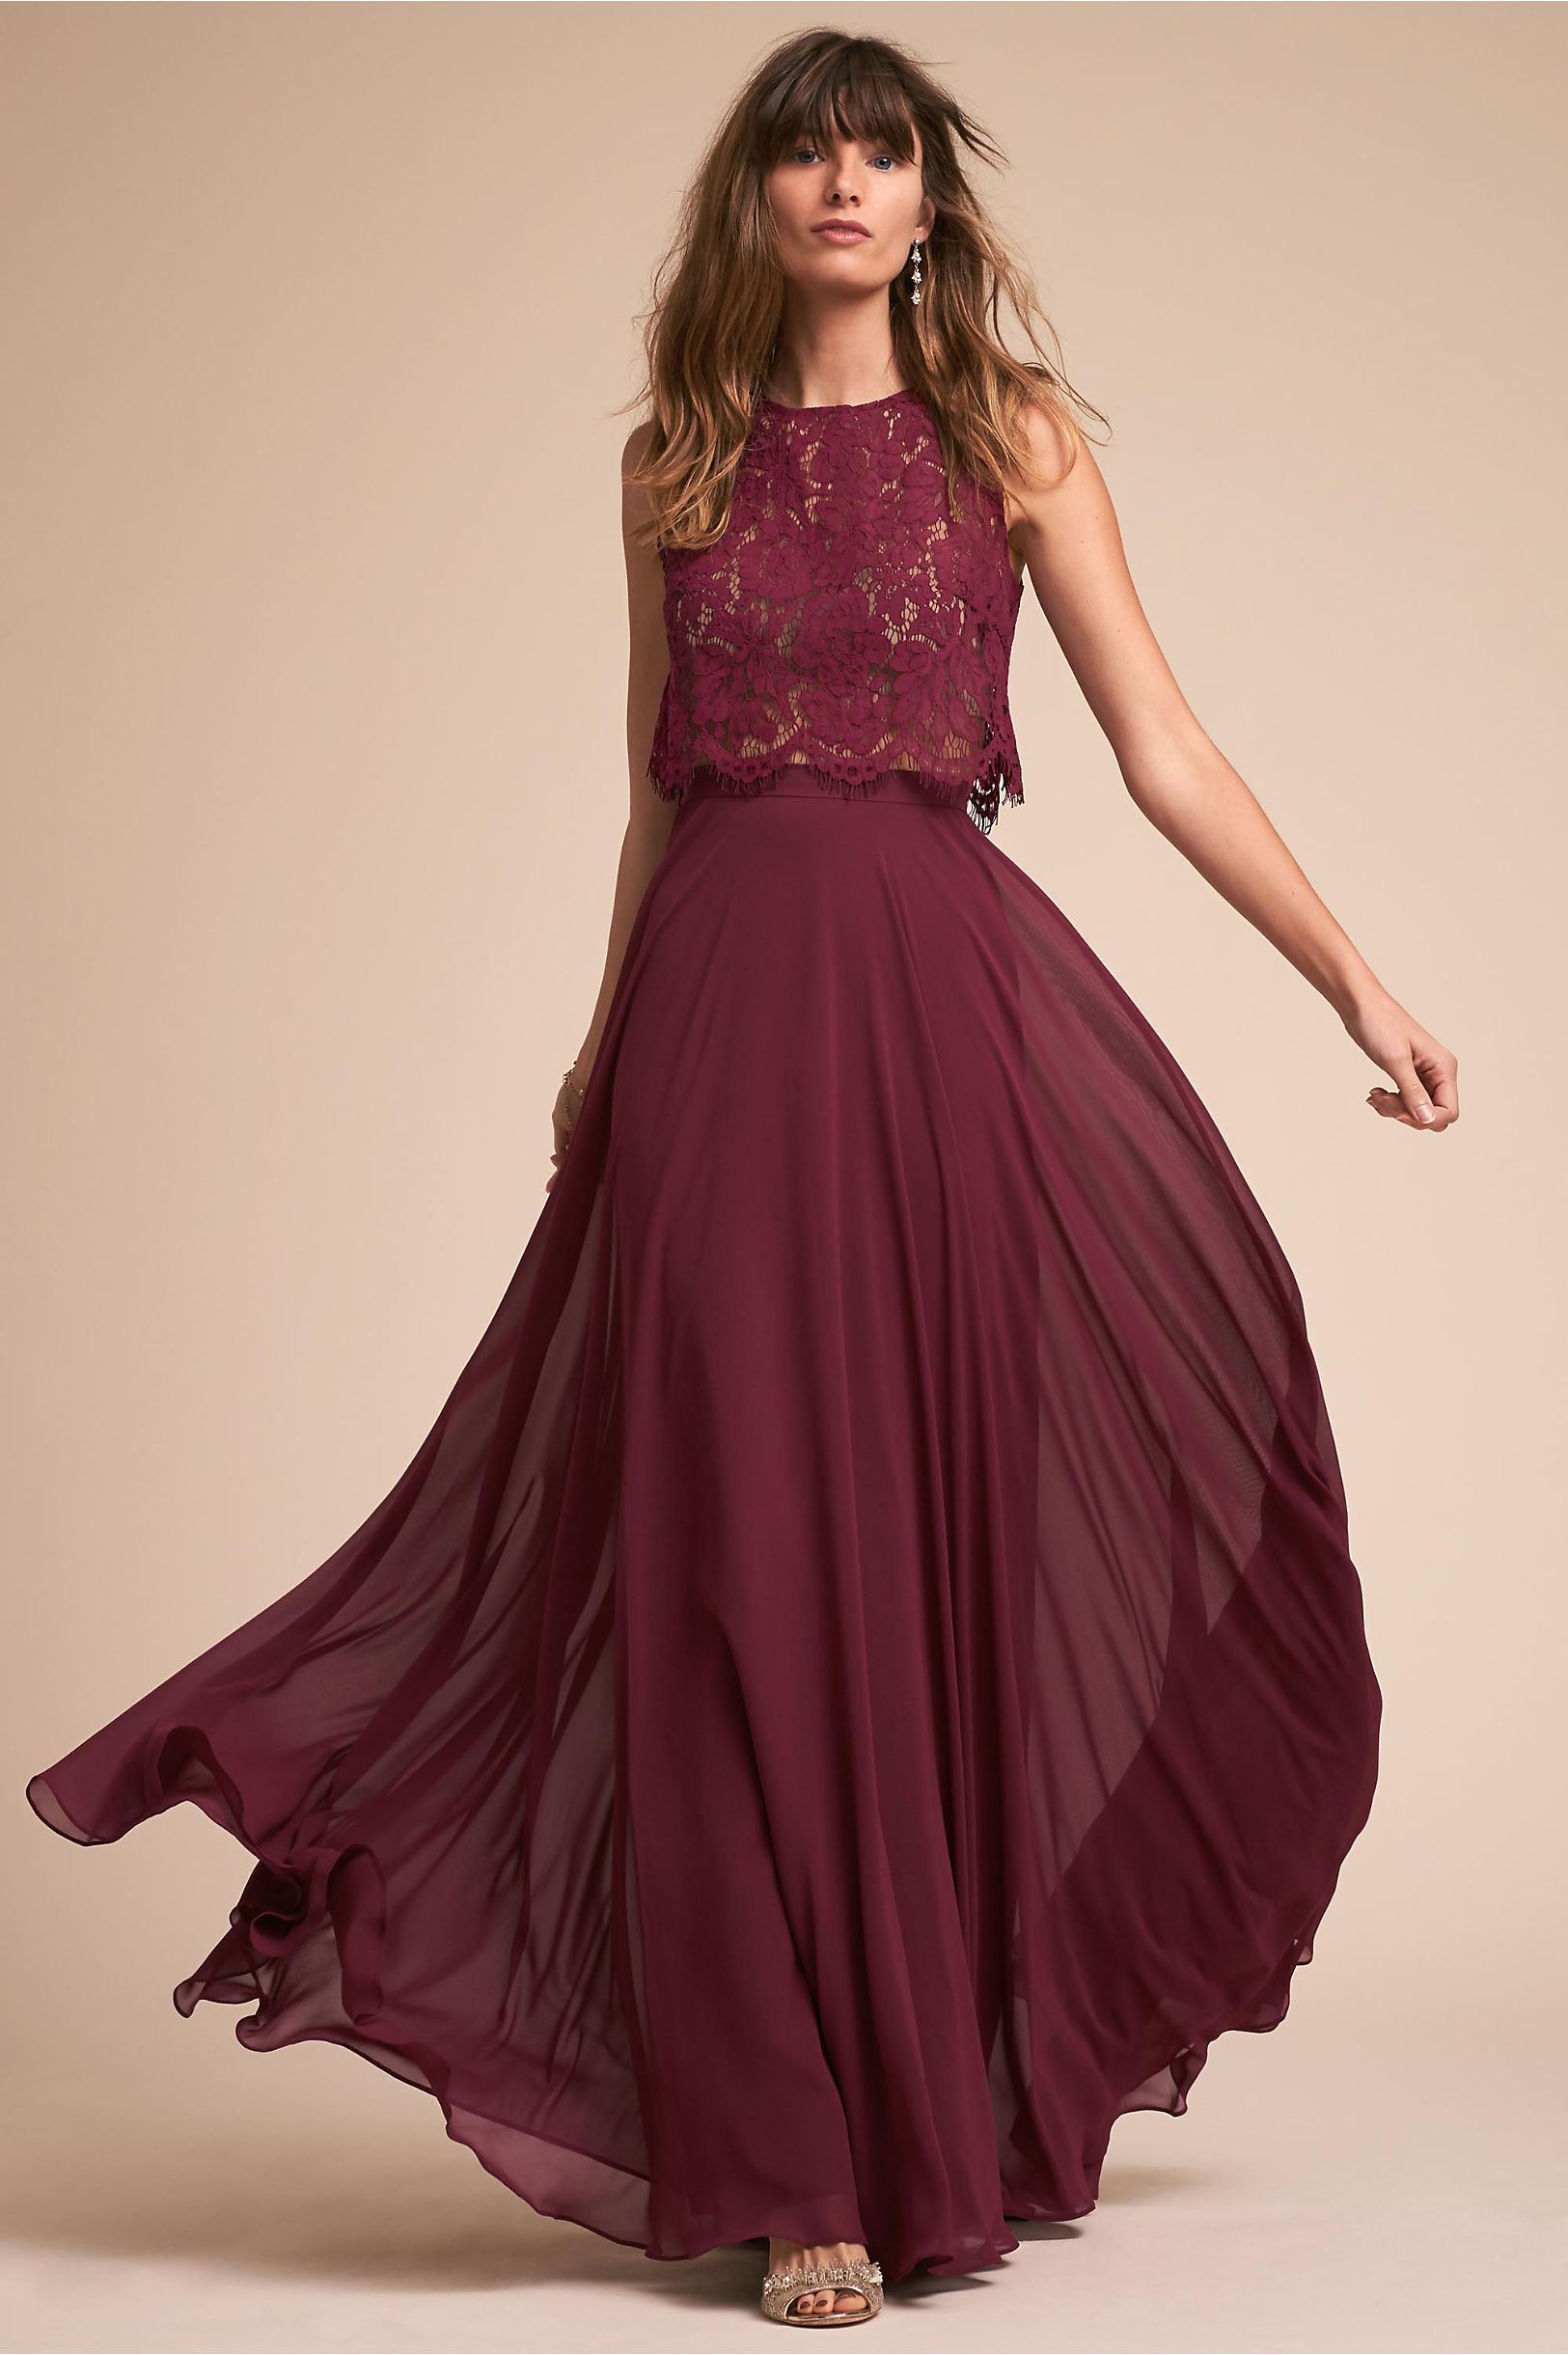 Burgundy red wine colored bridesmaid dresses bhldn cleo top hampton skirt ombrellifo Image collections